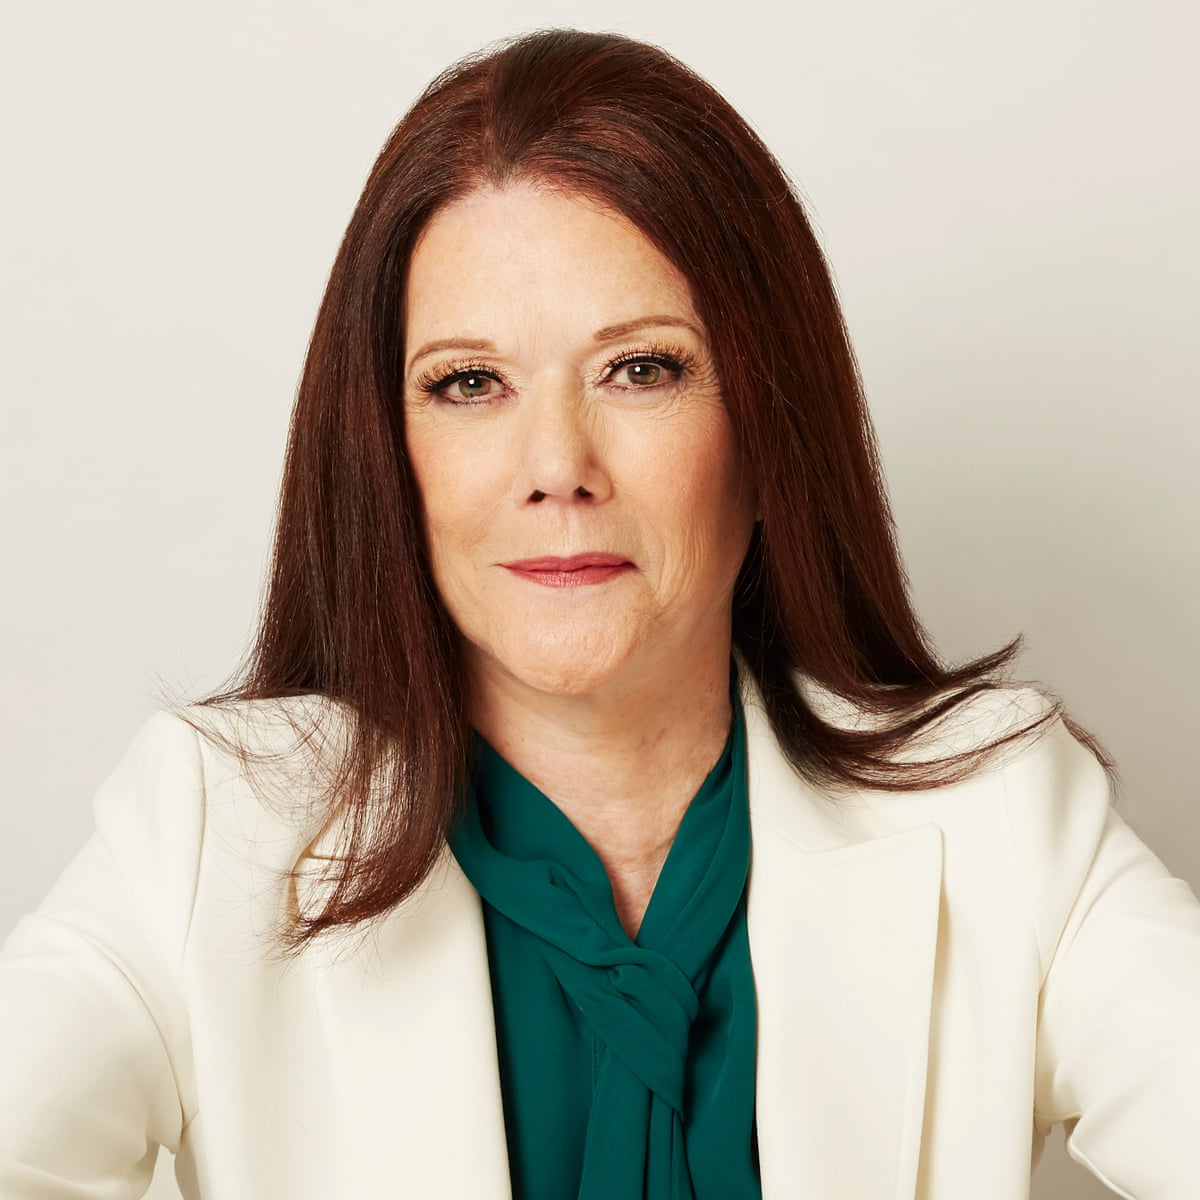 The 63-year old daughter of father (?) and mother(?) Kathleen Zellner in 2021 photo. Kathleen Zellner earned a  million dollar salary - leaving the net worth at  million in 2021